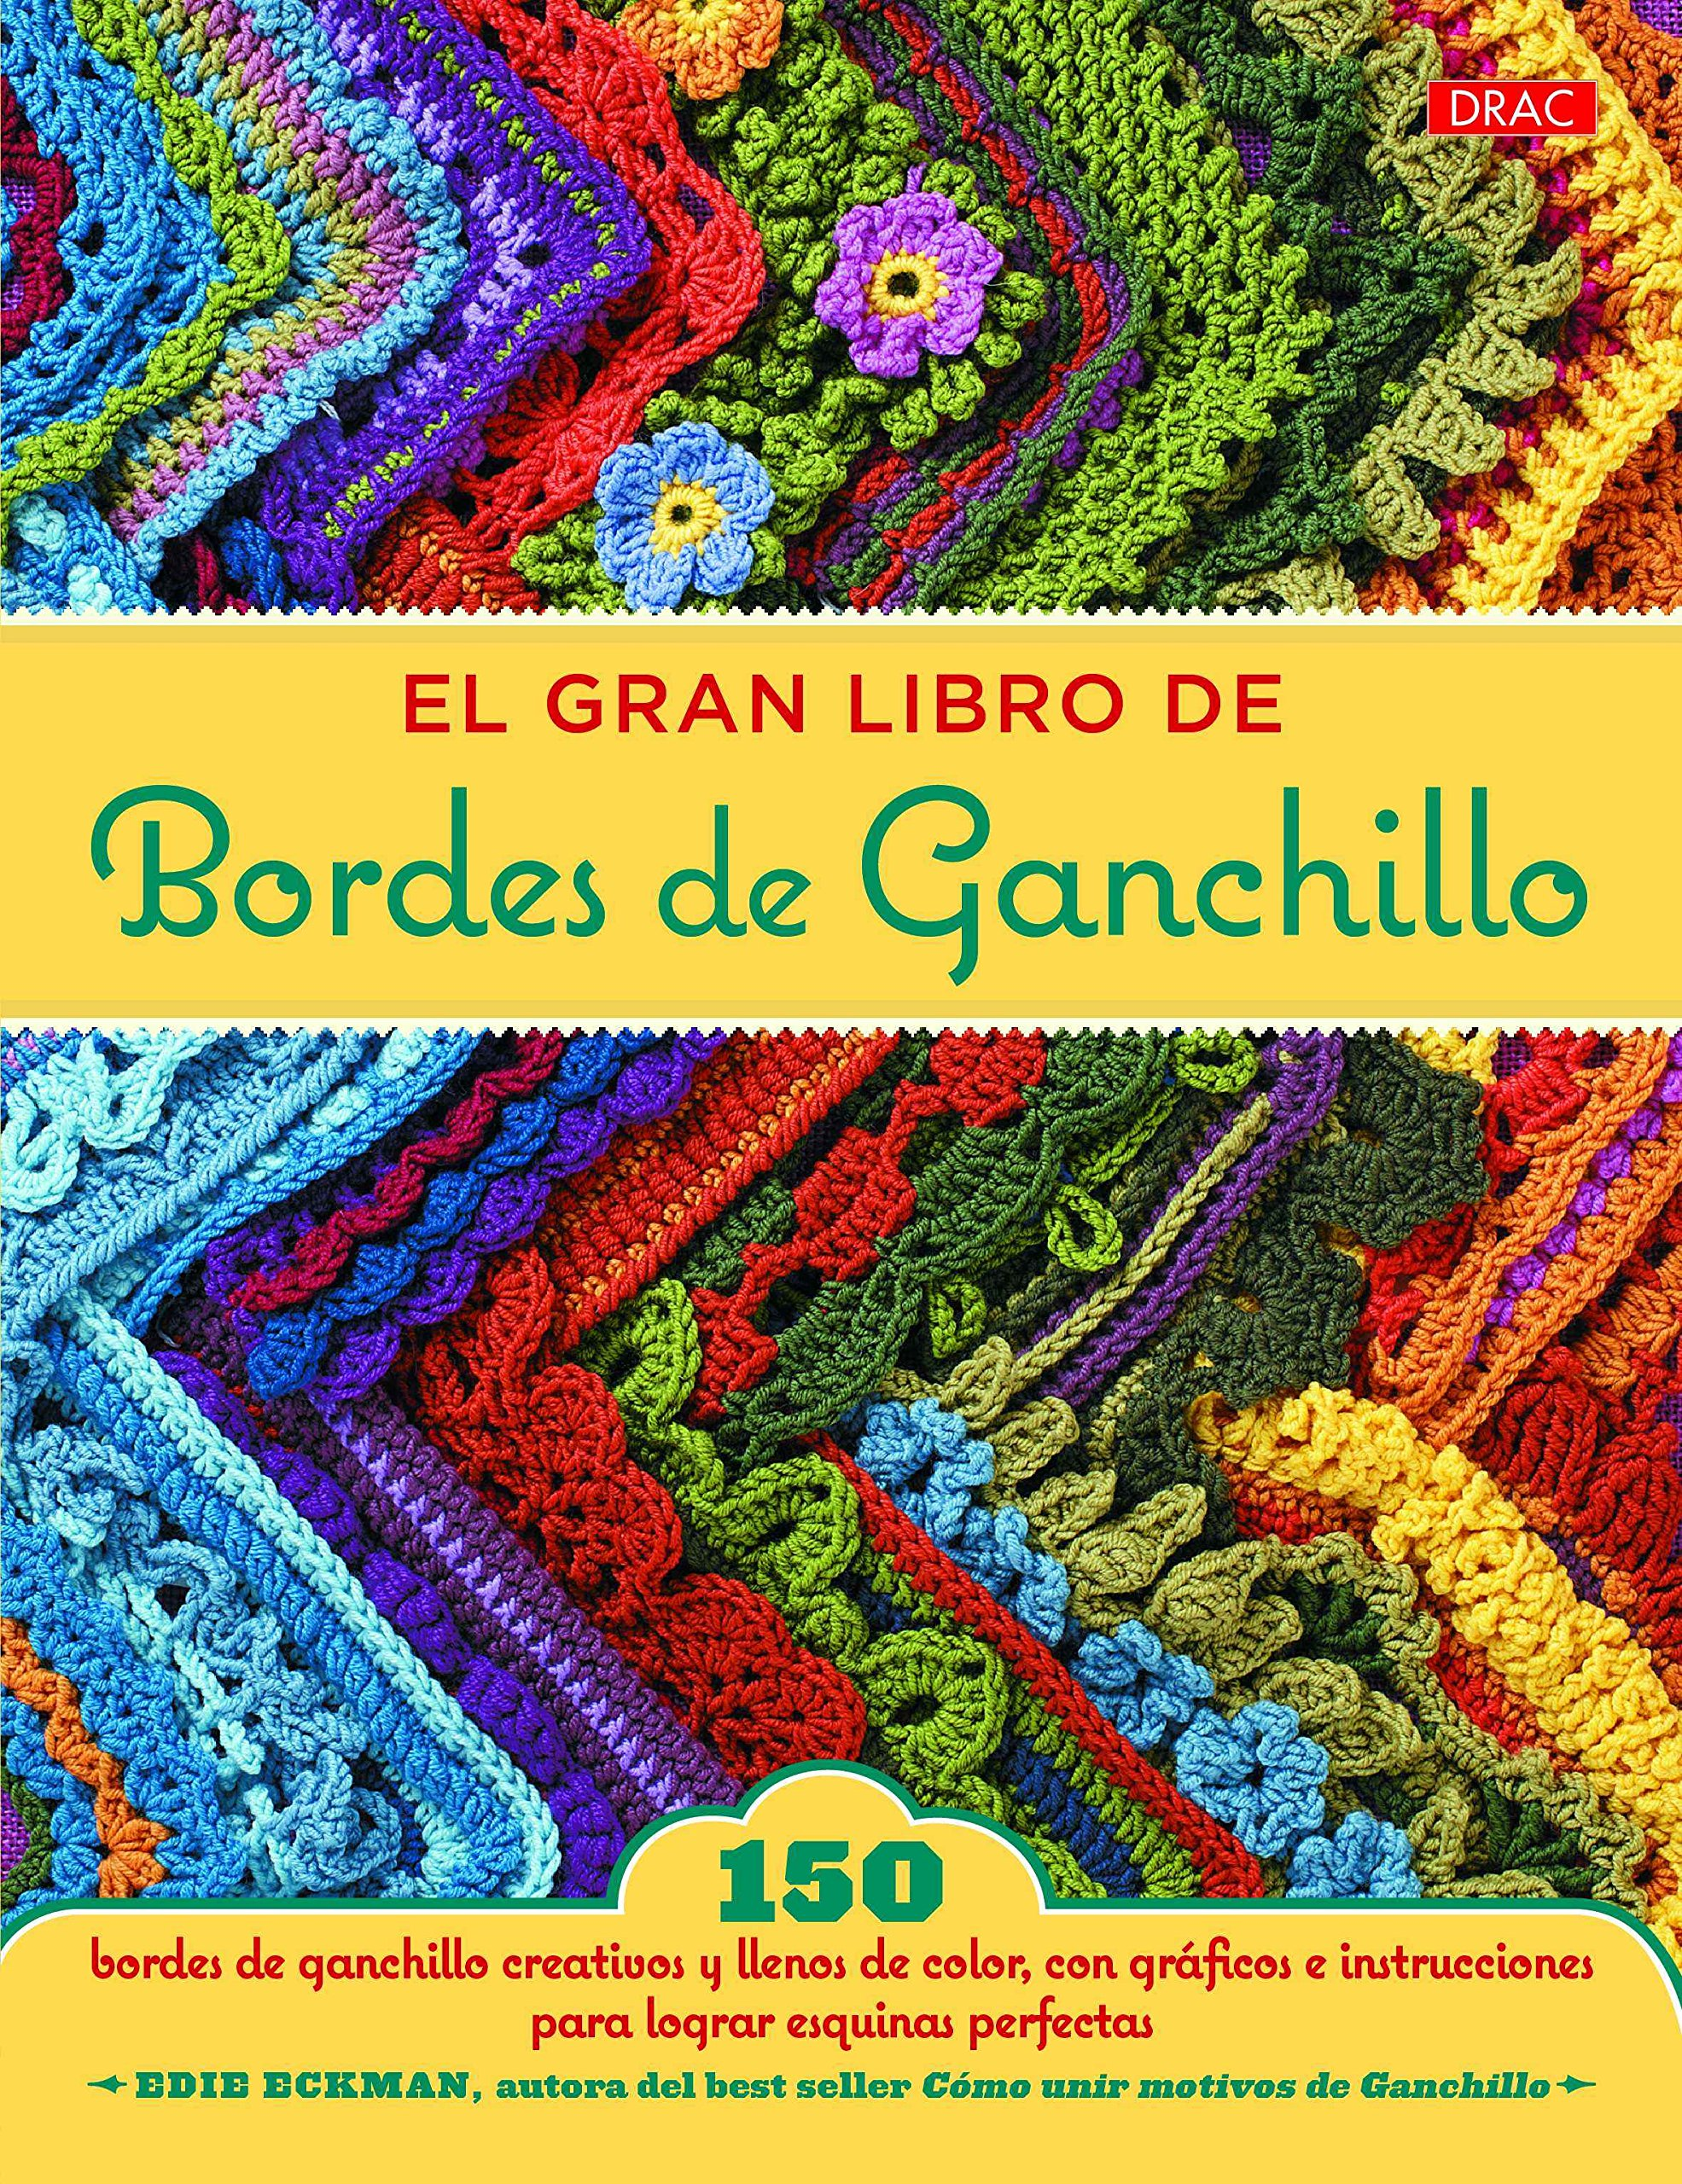 El Gran Libro De Bordes De Ganchillo: Amazon.es: Edie Eckman ...